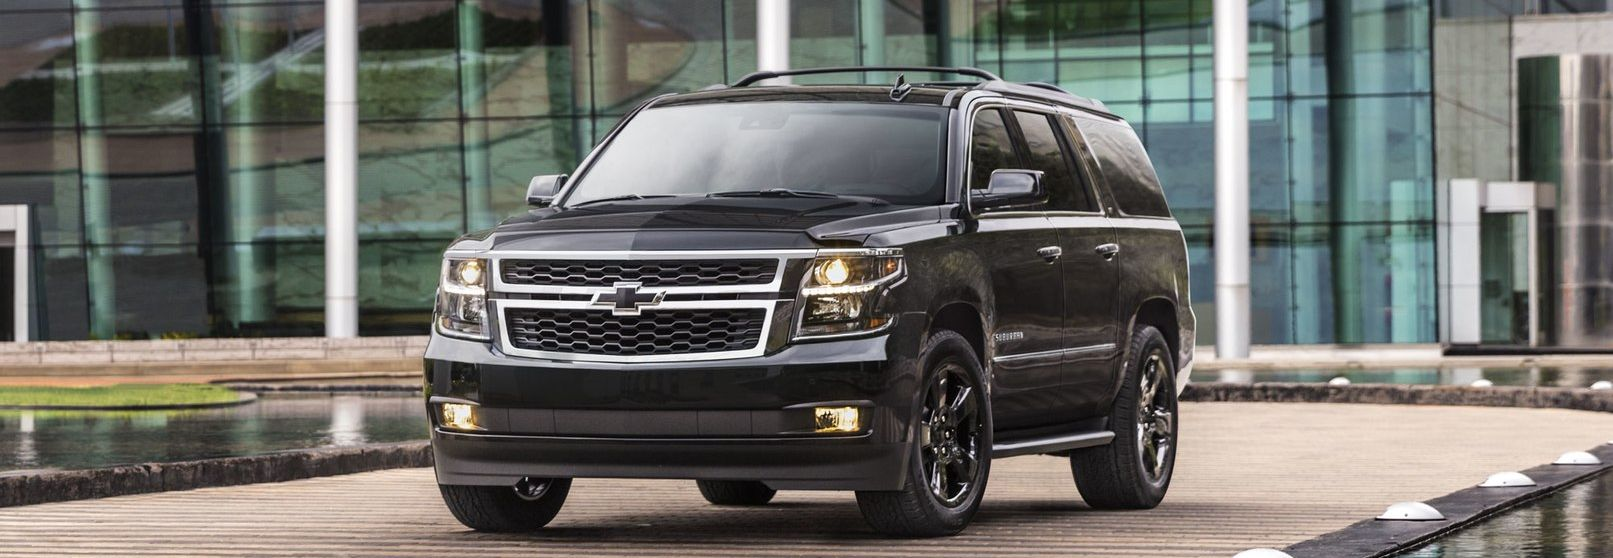 2019 Chevrolet Suburban for Sale near Schererville, IN